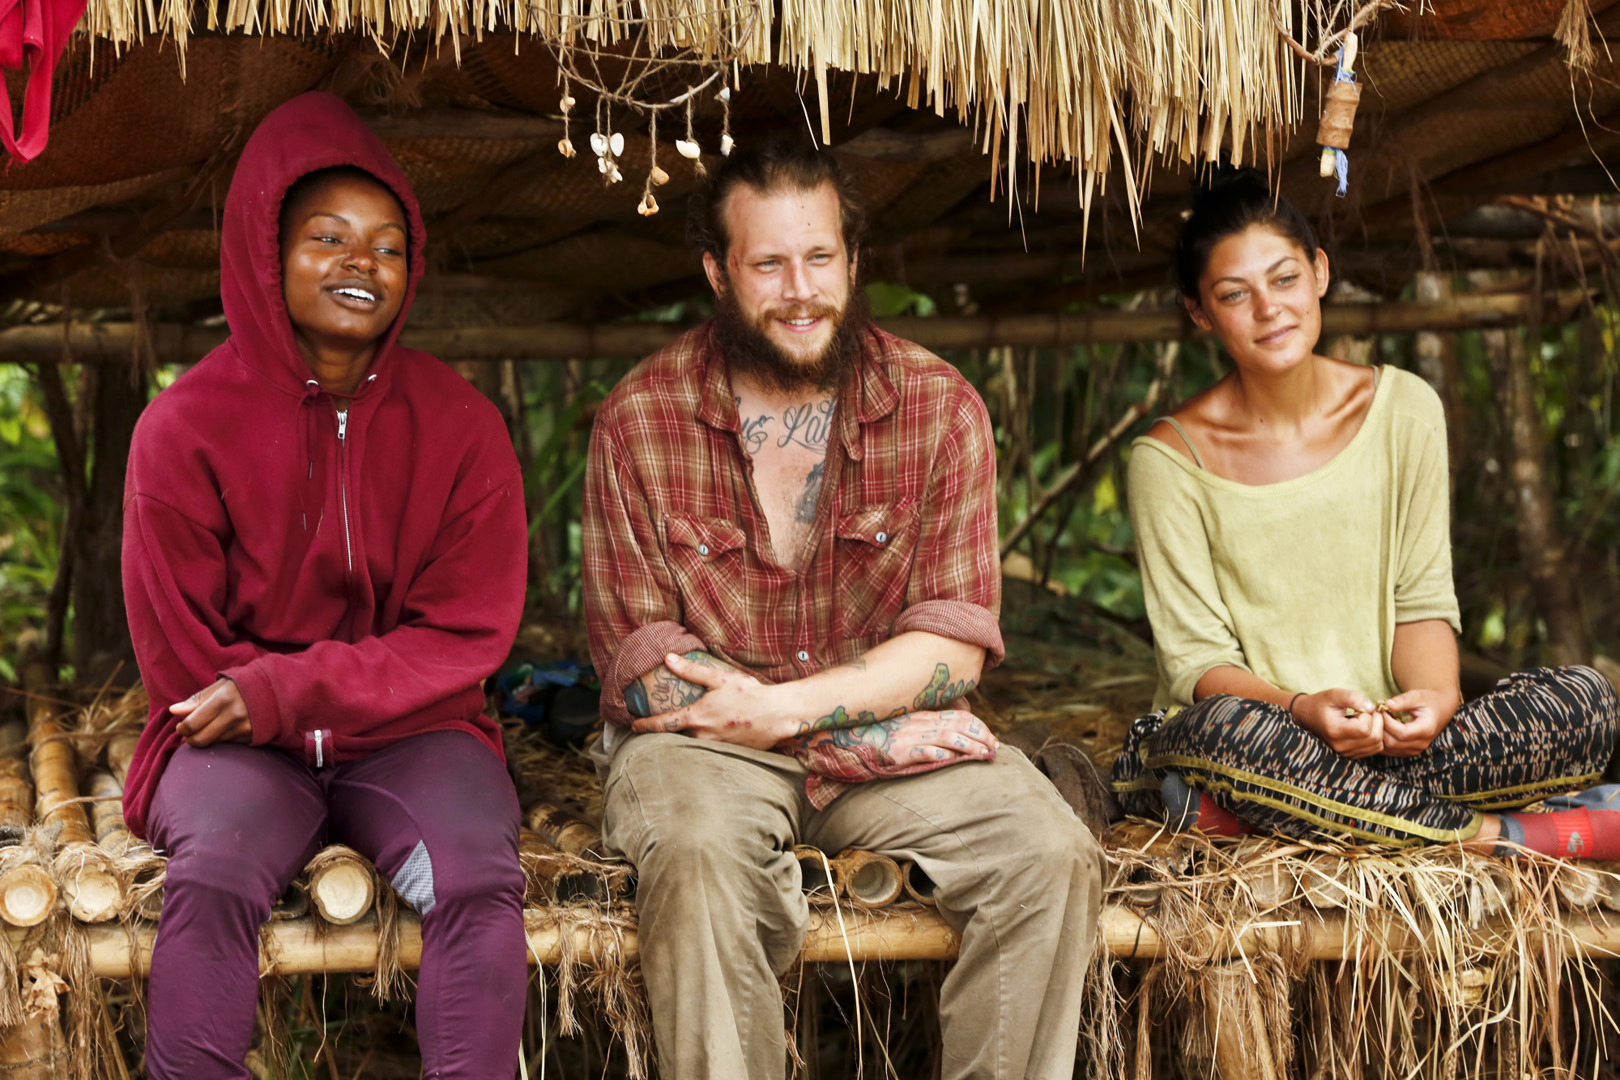 Cydney, Jason, and Michele hang out together under their makeshift shelter.